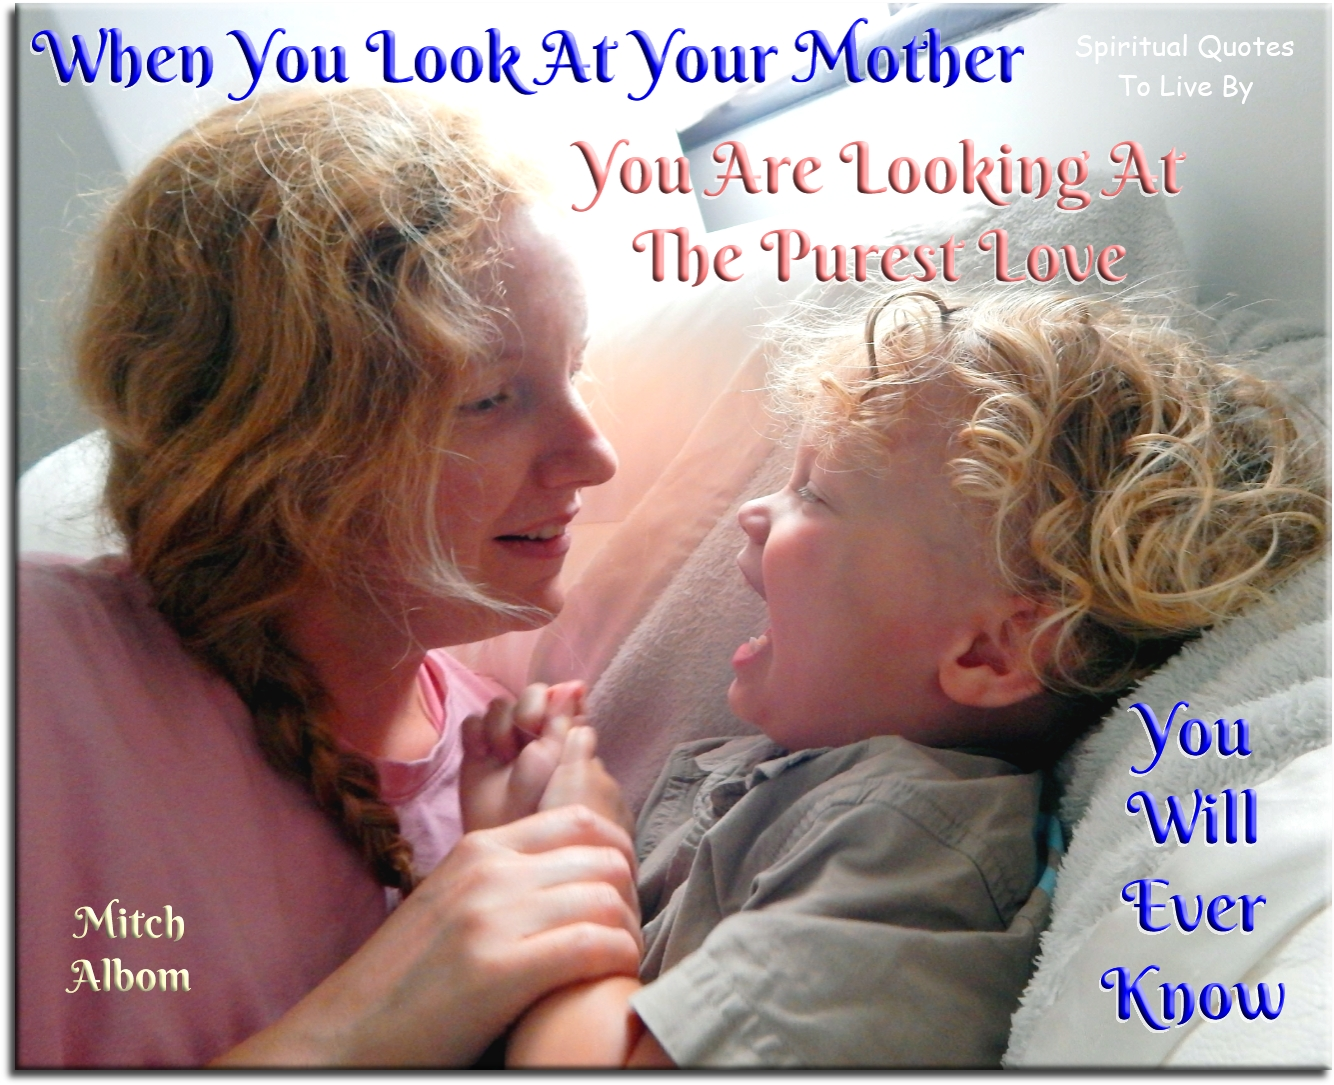 When you look at your mother, you are looking at the purest love you will ever know - Mitch Albom - Spiritual Quotes To Live By